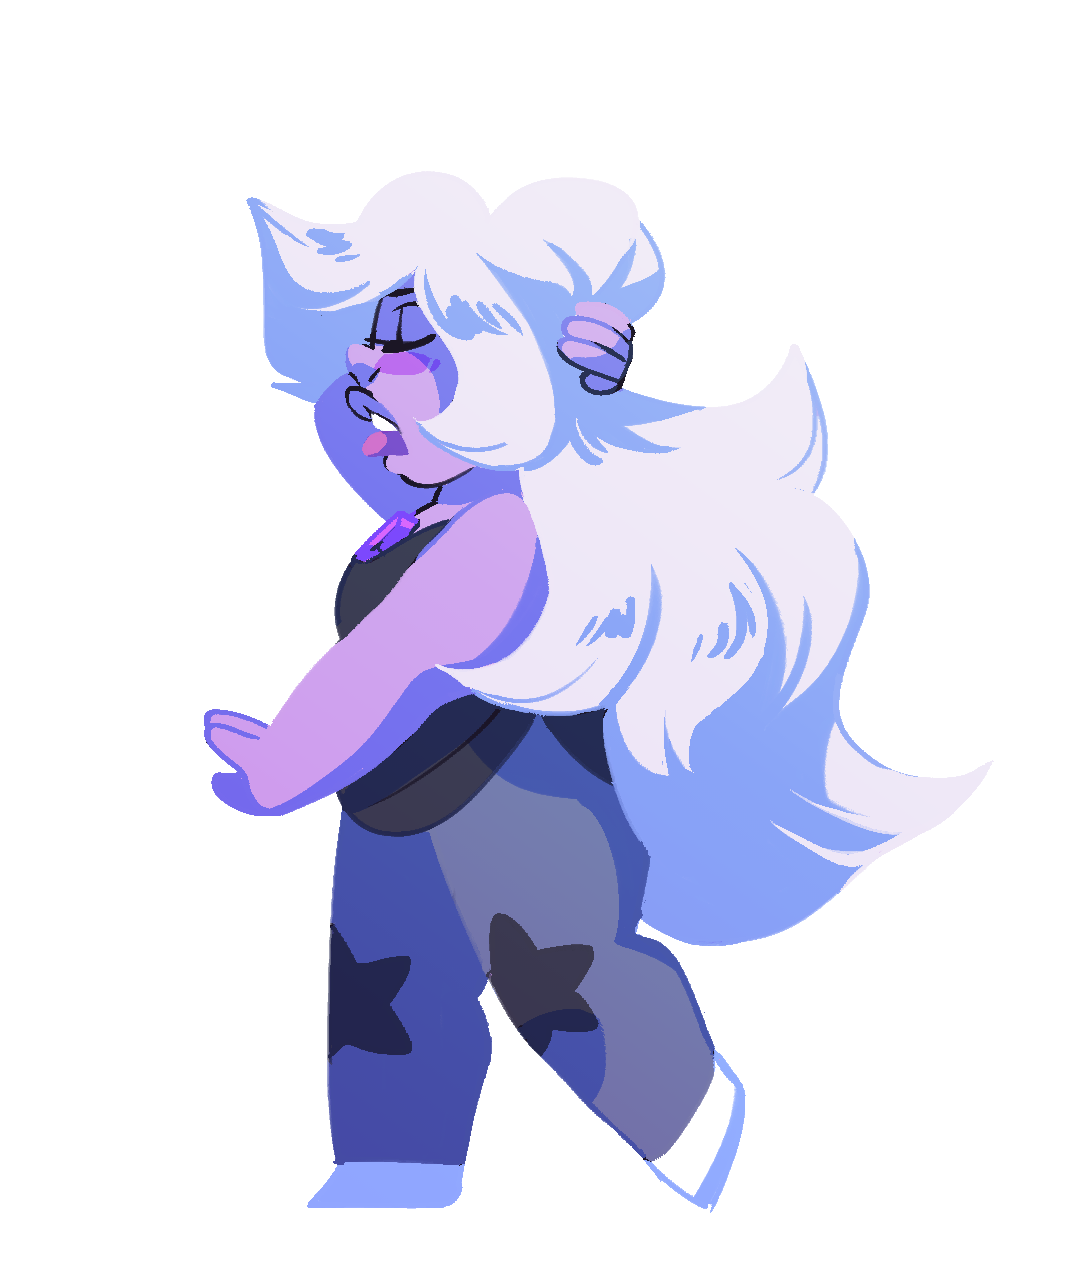 sleepy purple gem Just warming up for some stuff I'm trying to plan for this week. I've been really feeling Amethyst lately, she's precious and amazing